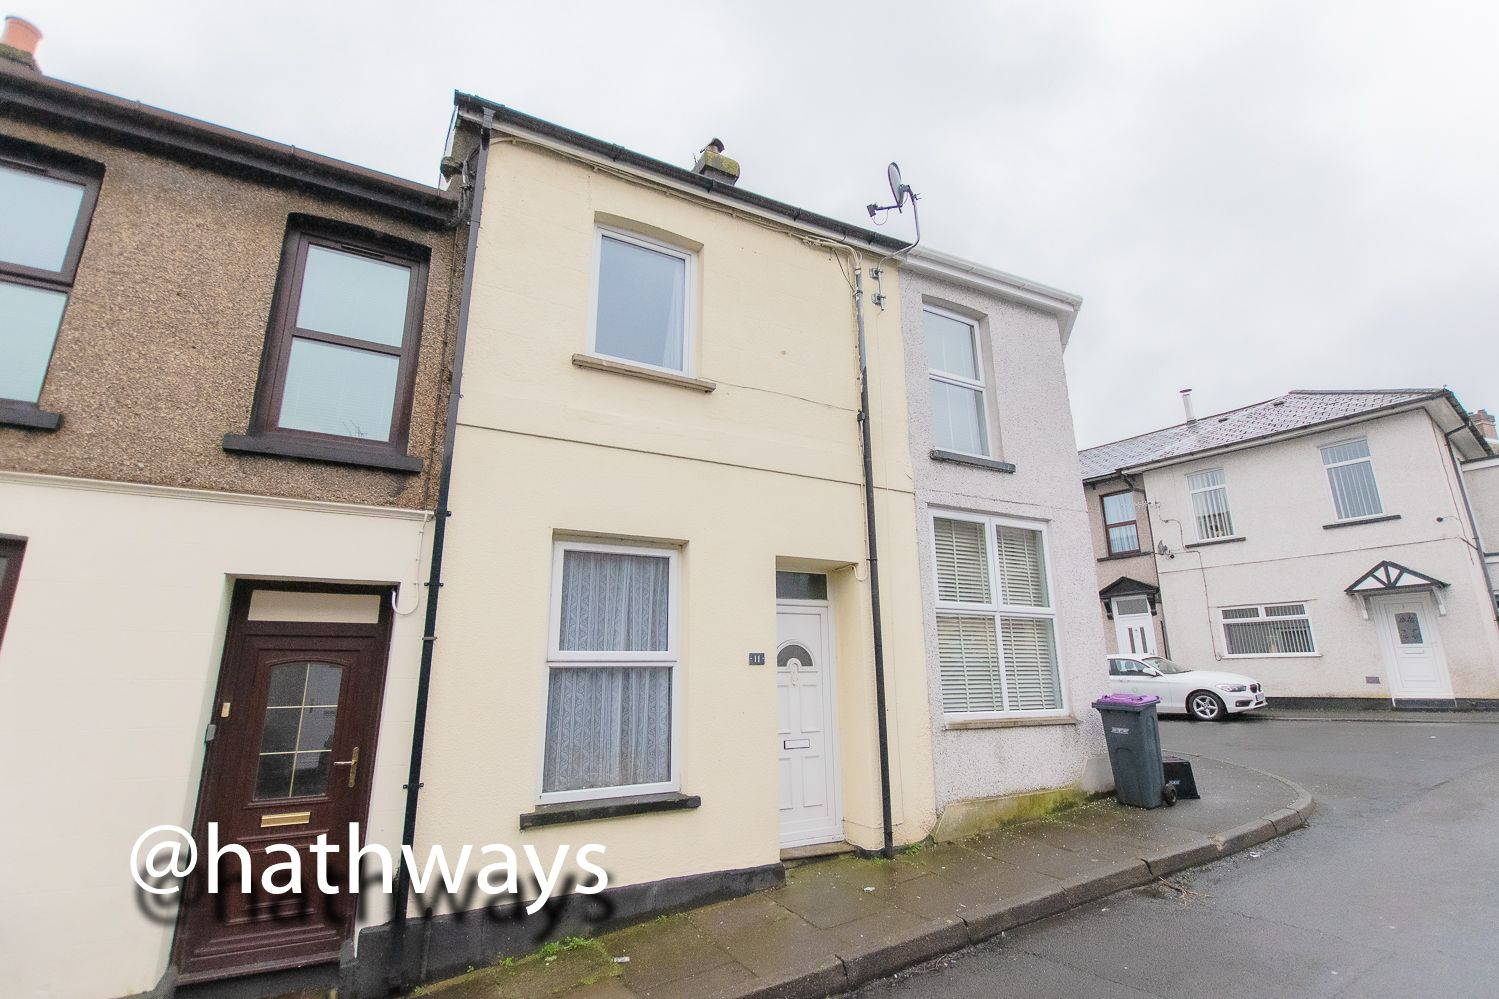 2 bed house for sale in Upper Bridge Street, NP4